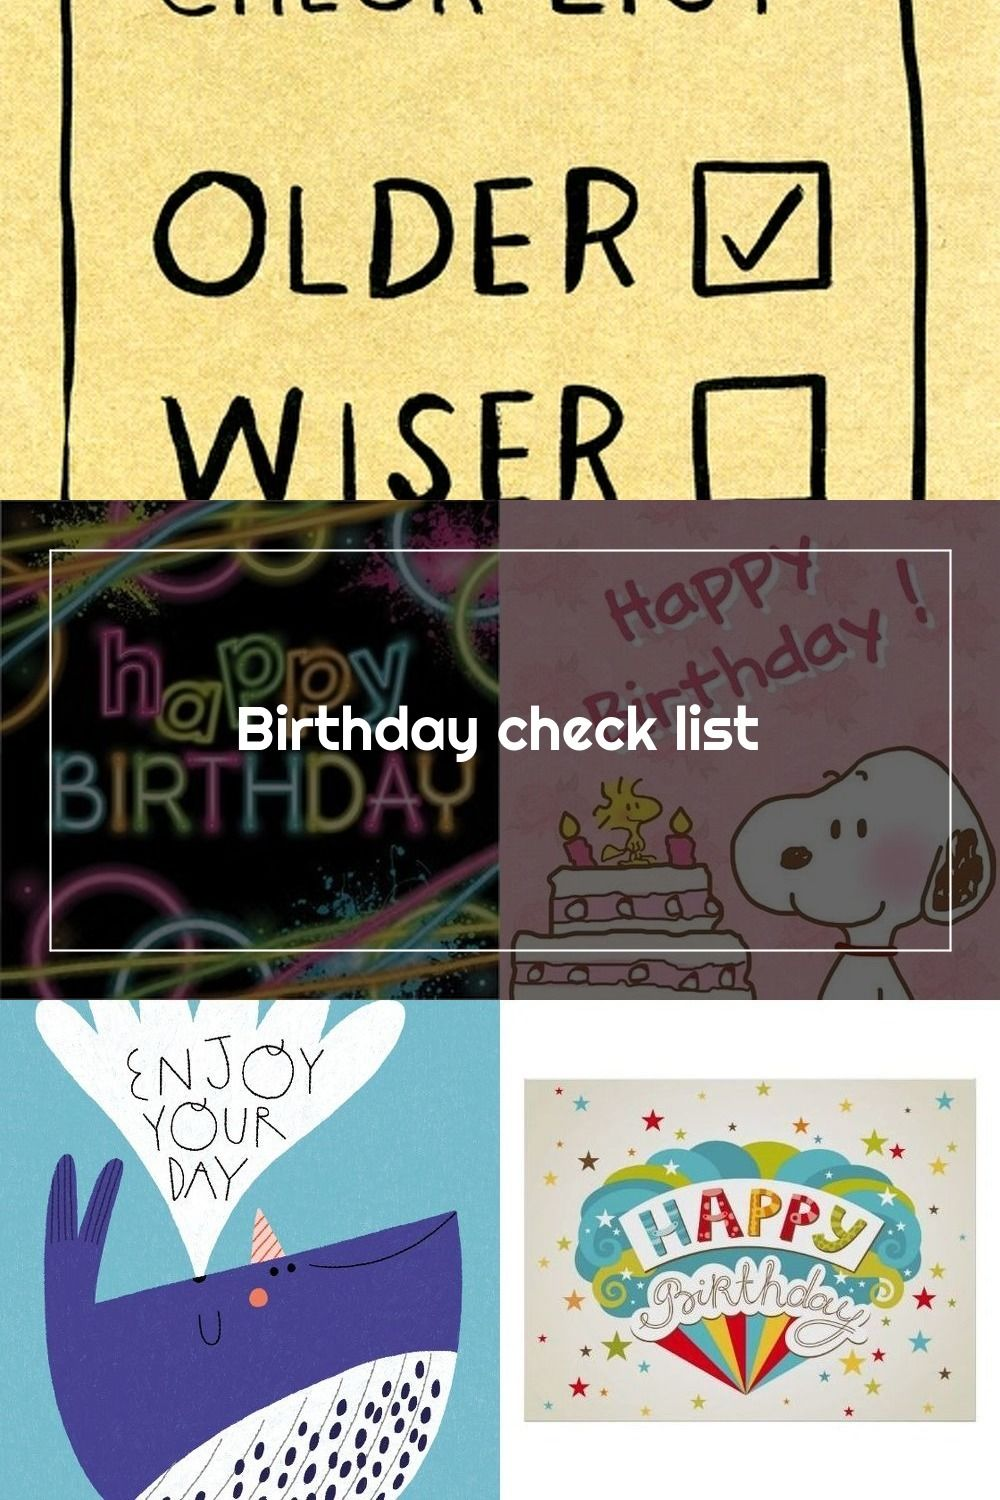 Funny Card Birthday Check List Older Wiser Comedy Card Company Funny Birthday Cards Birthday Cards Cards